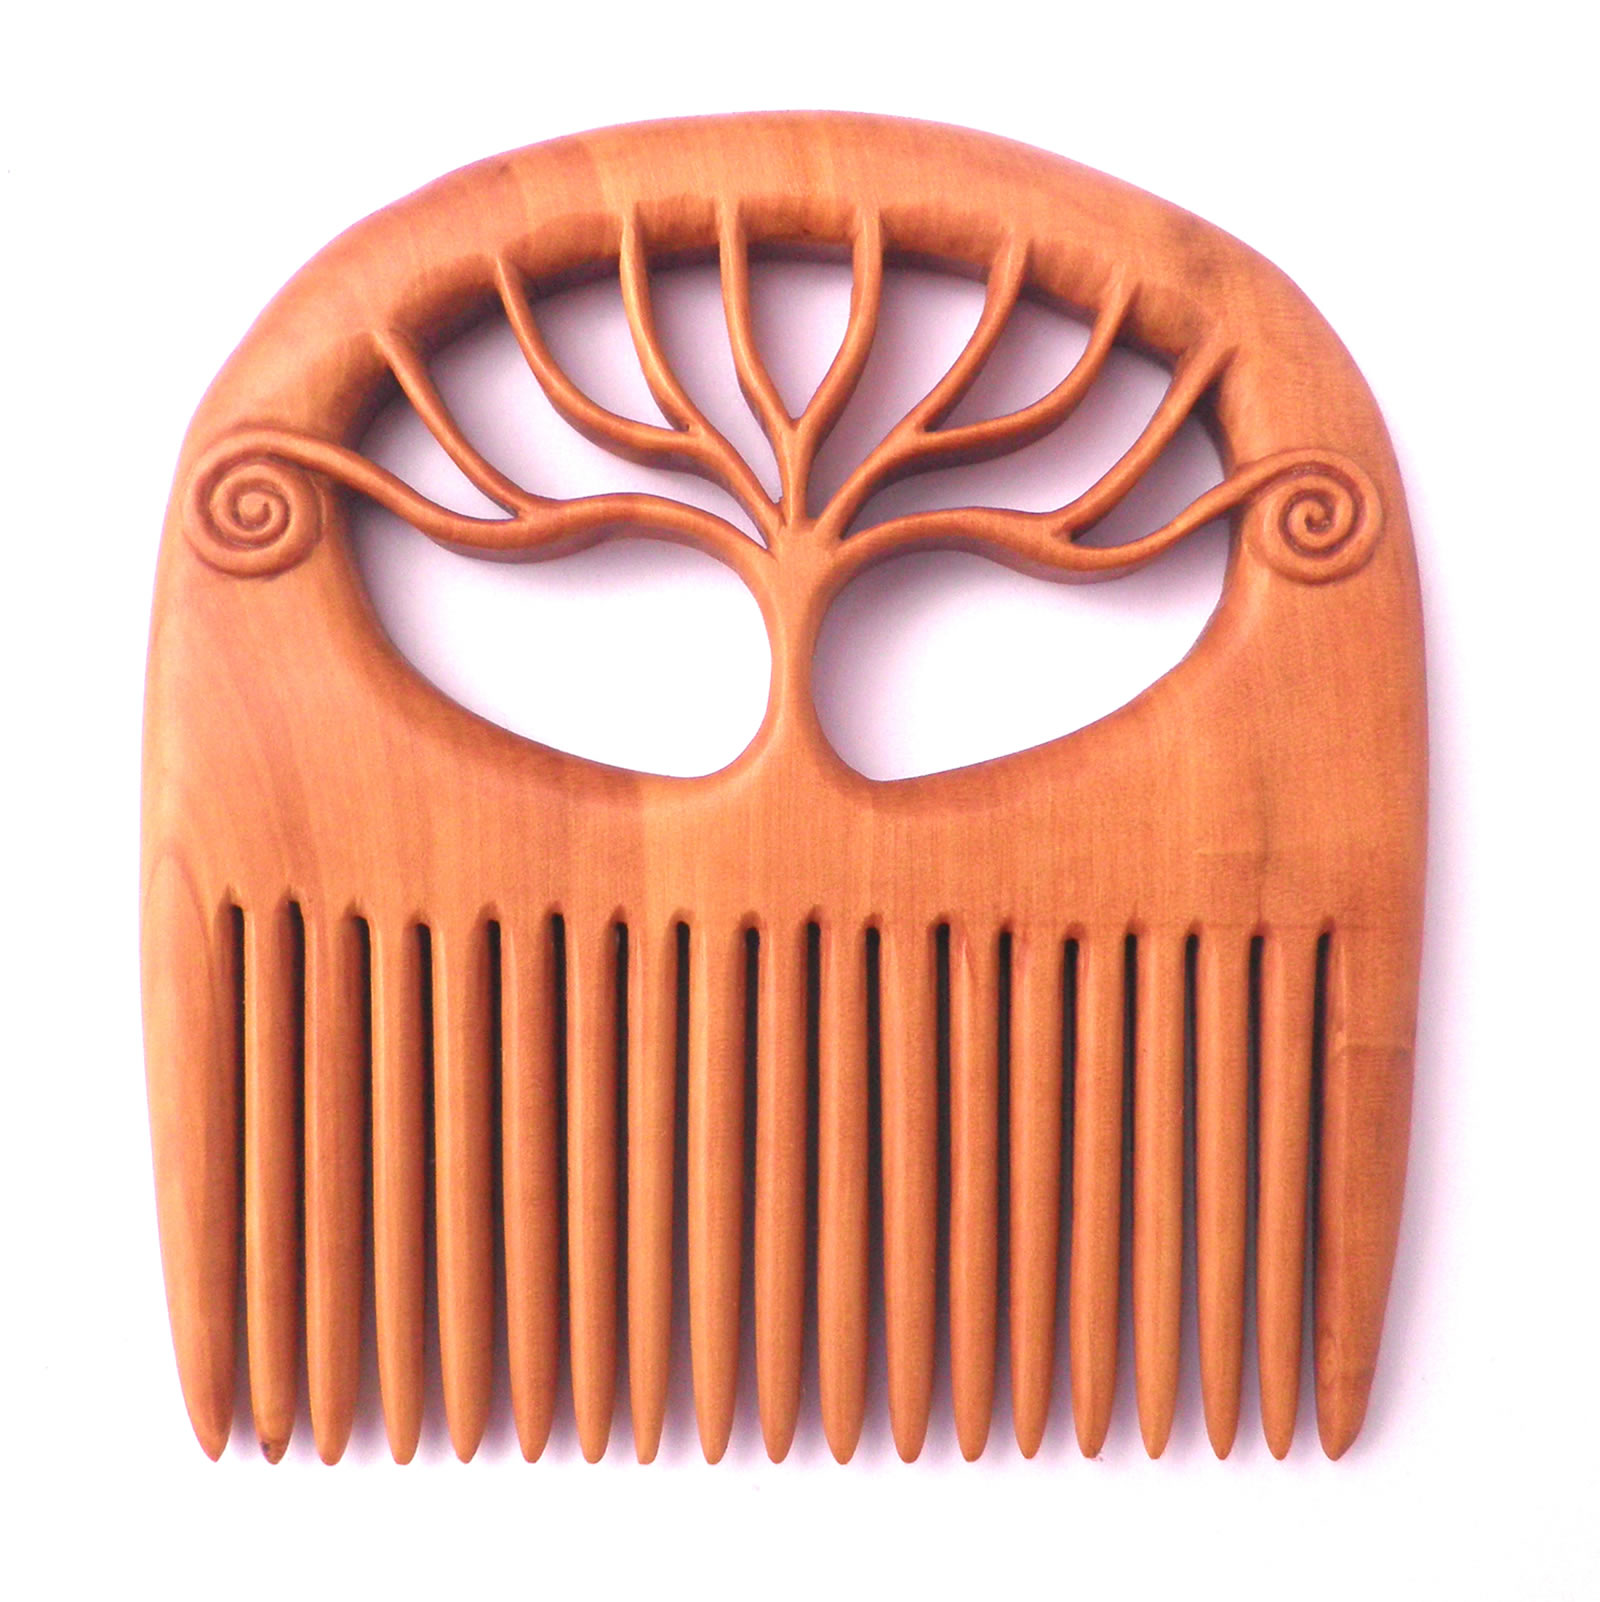 Tree of life comb, carved from box wood